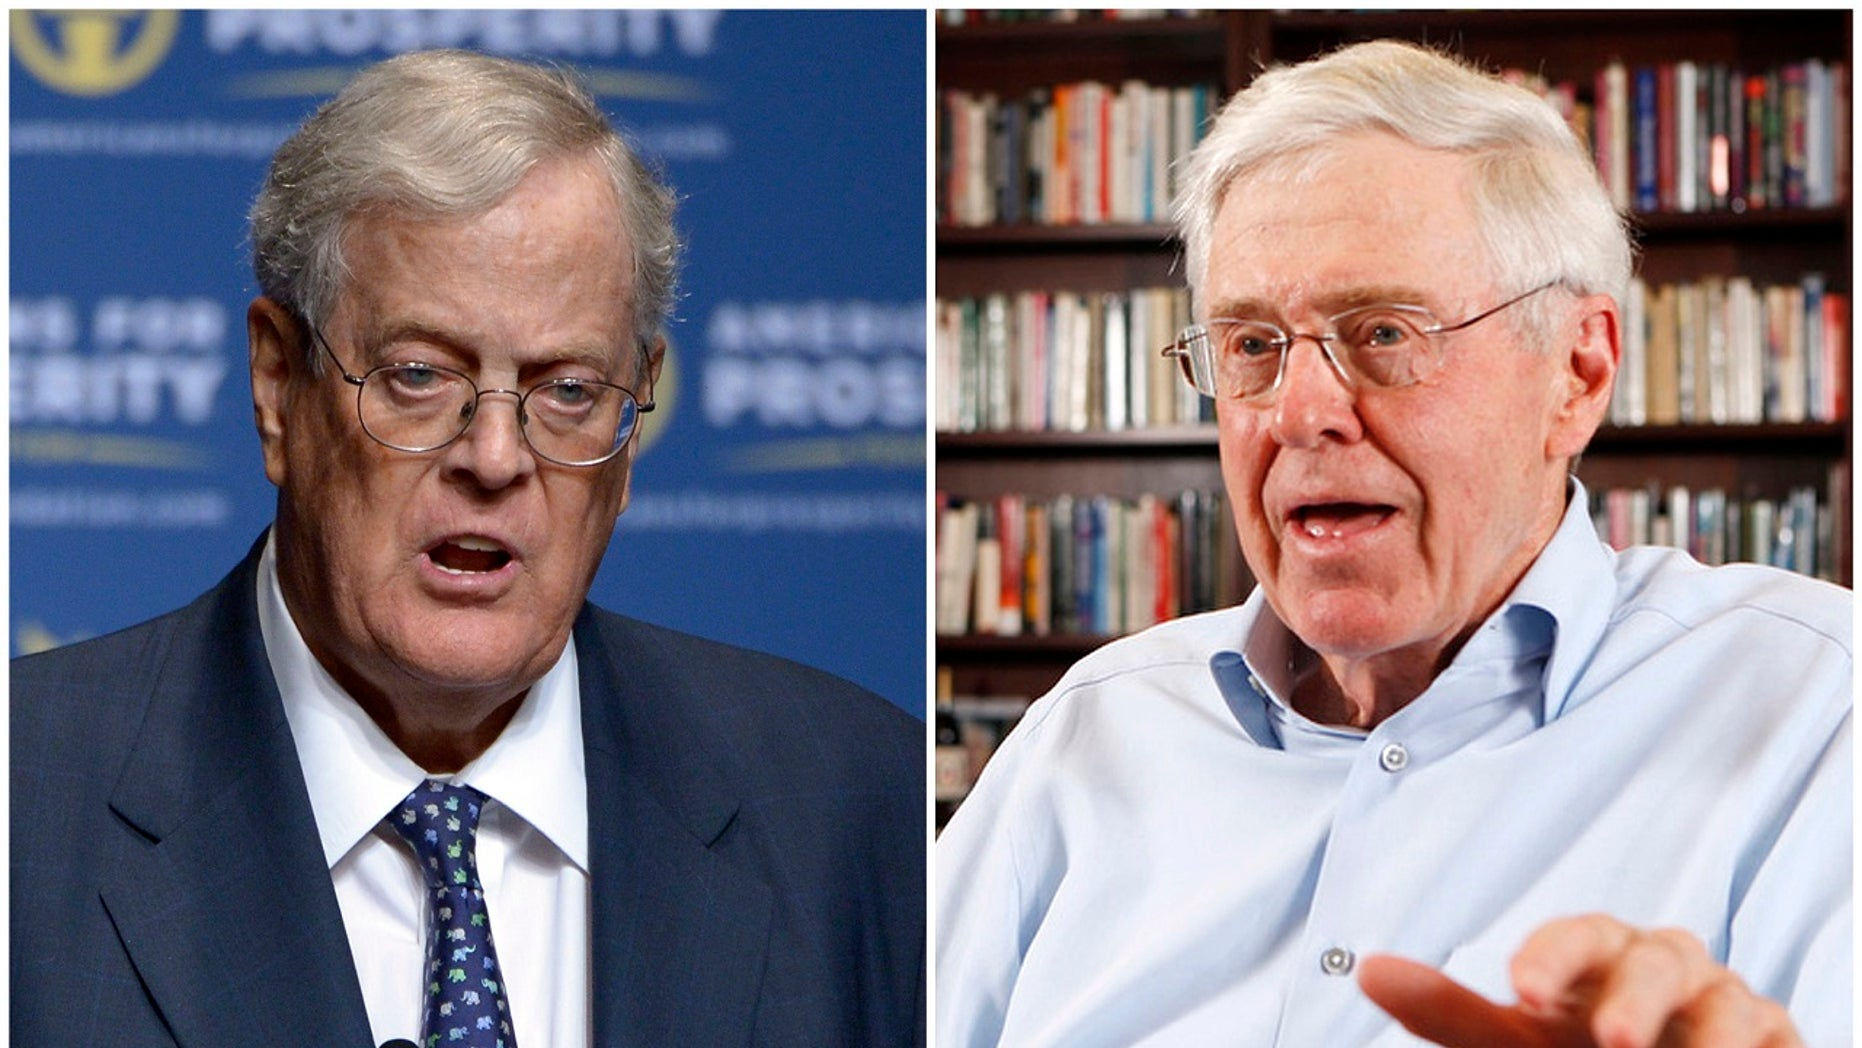 """Brothers David, left, and Charles Koch have quietly launched a rebranding effort that may vanquish the """"Koch brothers"""" moniker from American politics."""